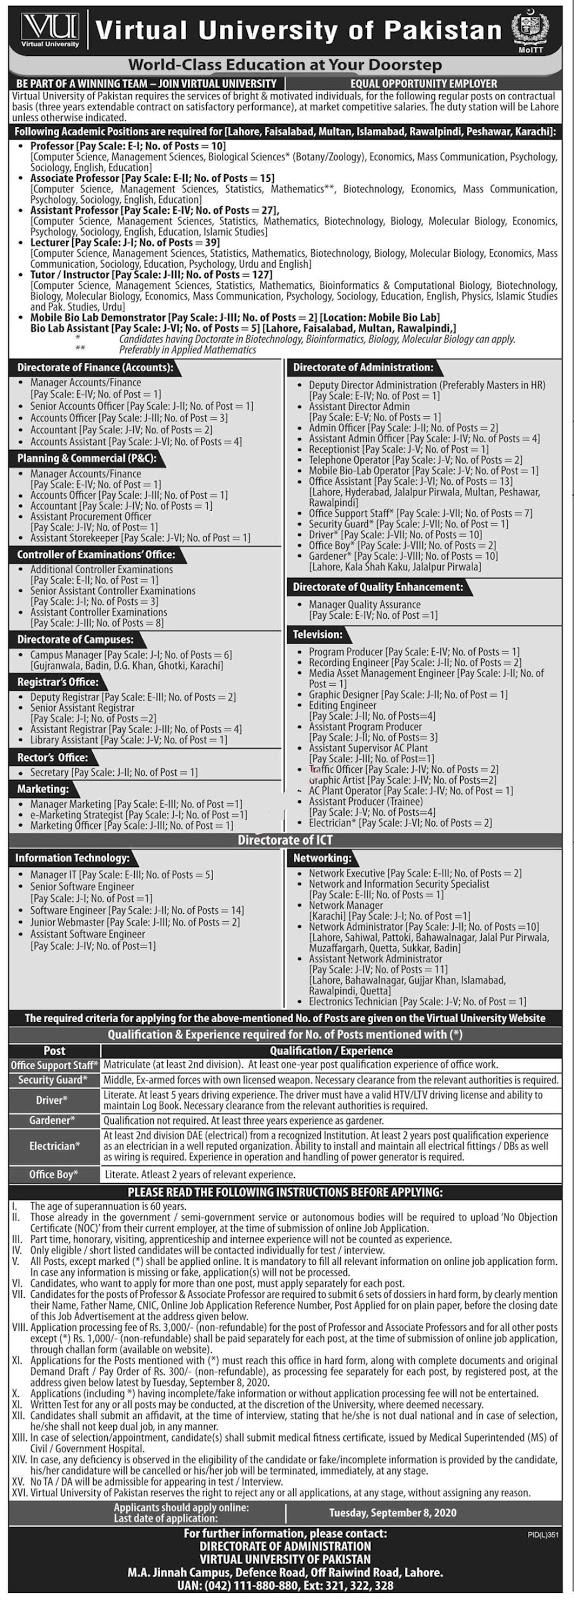 225 Jobs for Virtual University of Pakistan VU Jobs 2020